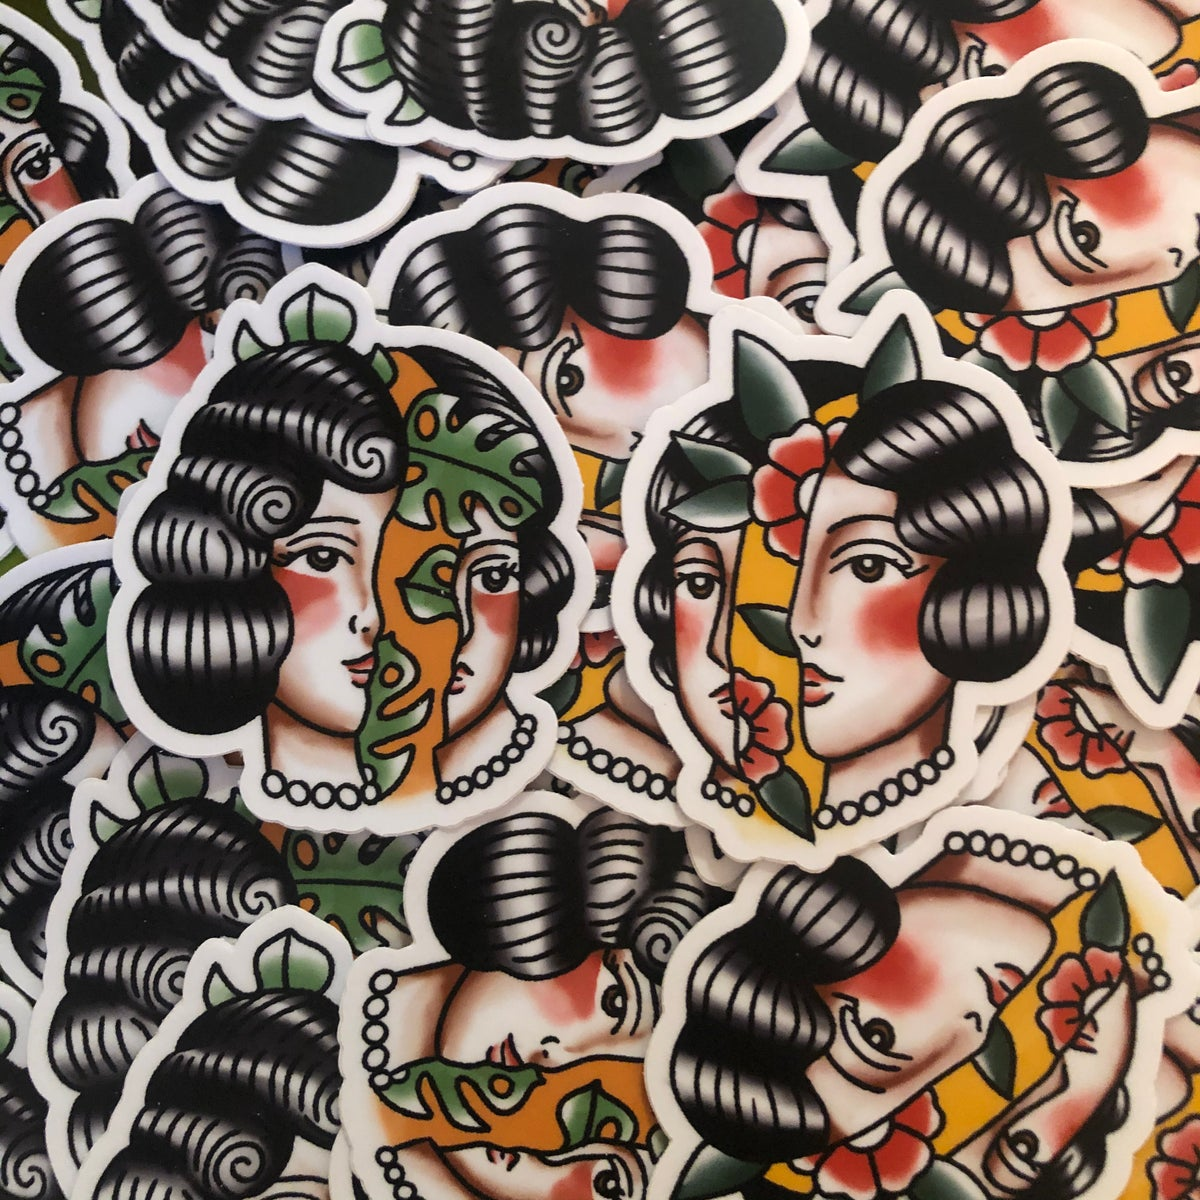 Split head stickers (2 pack)